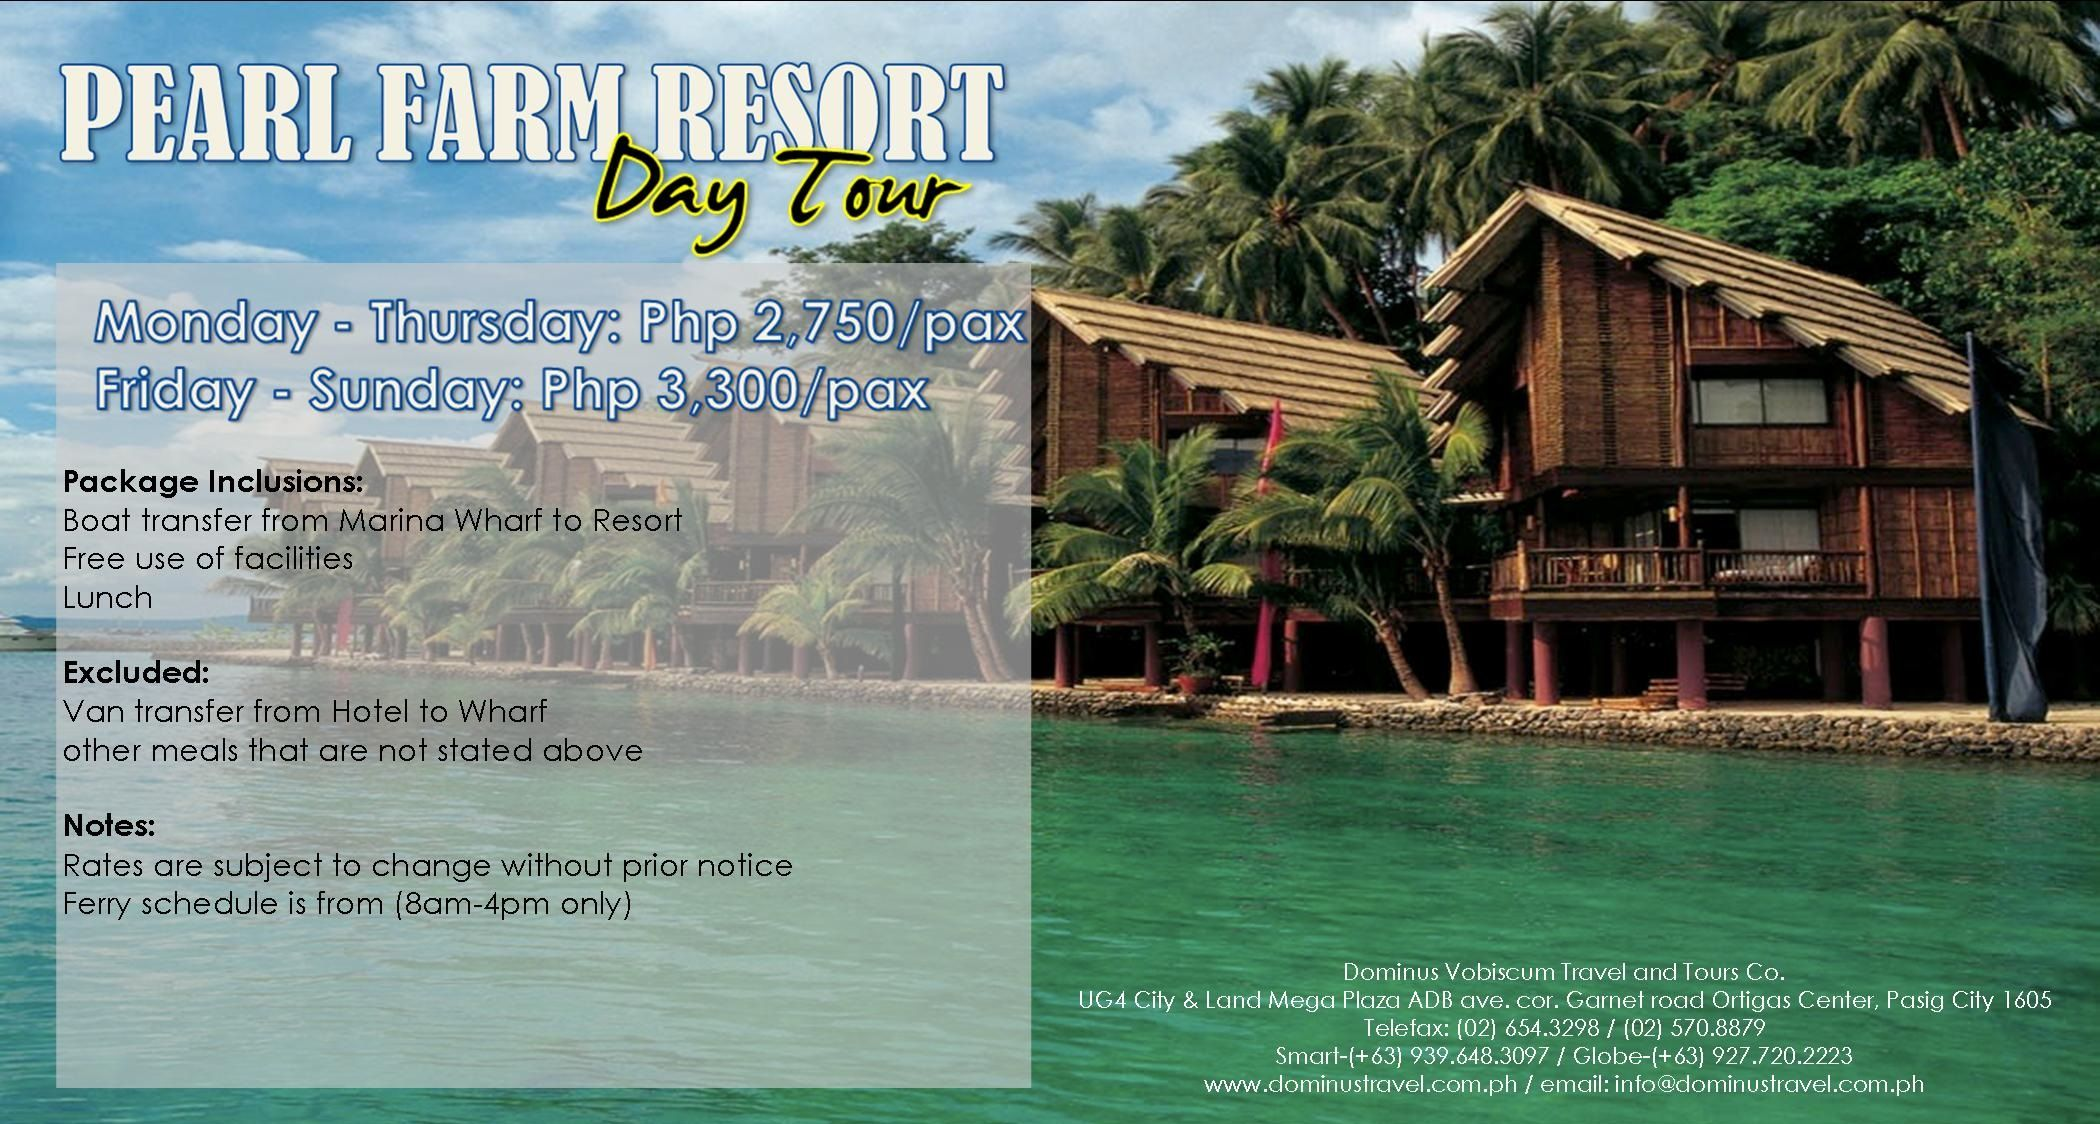 Pearl Farm Resort Day Tour Davao With Images Day Tours